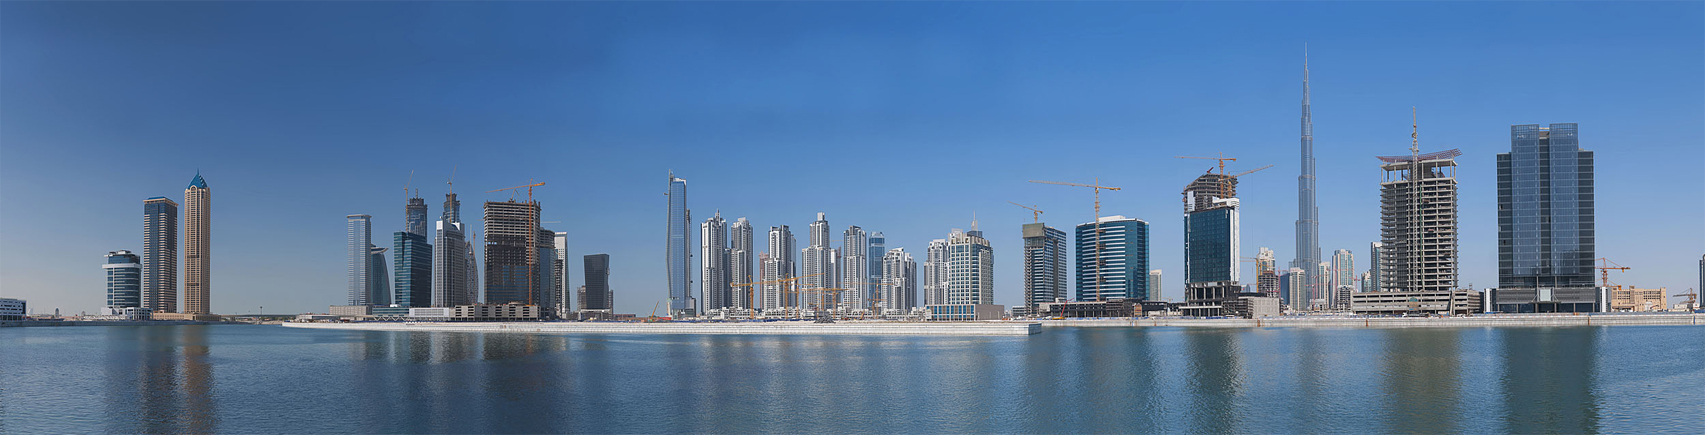 Dubai_Business_Bay_2500x638_011